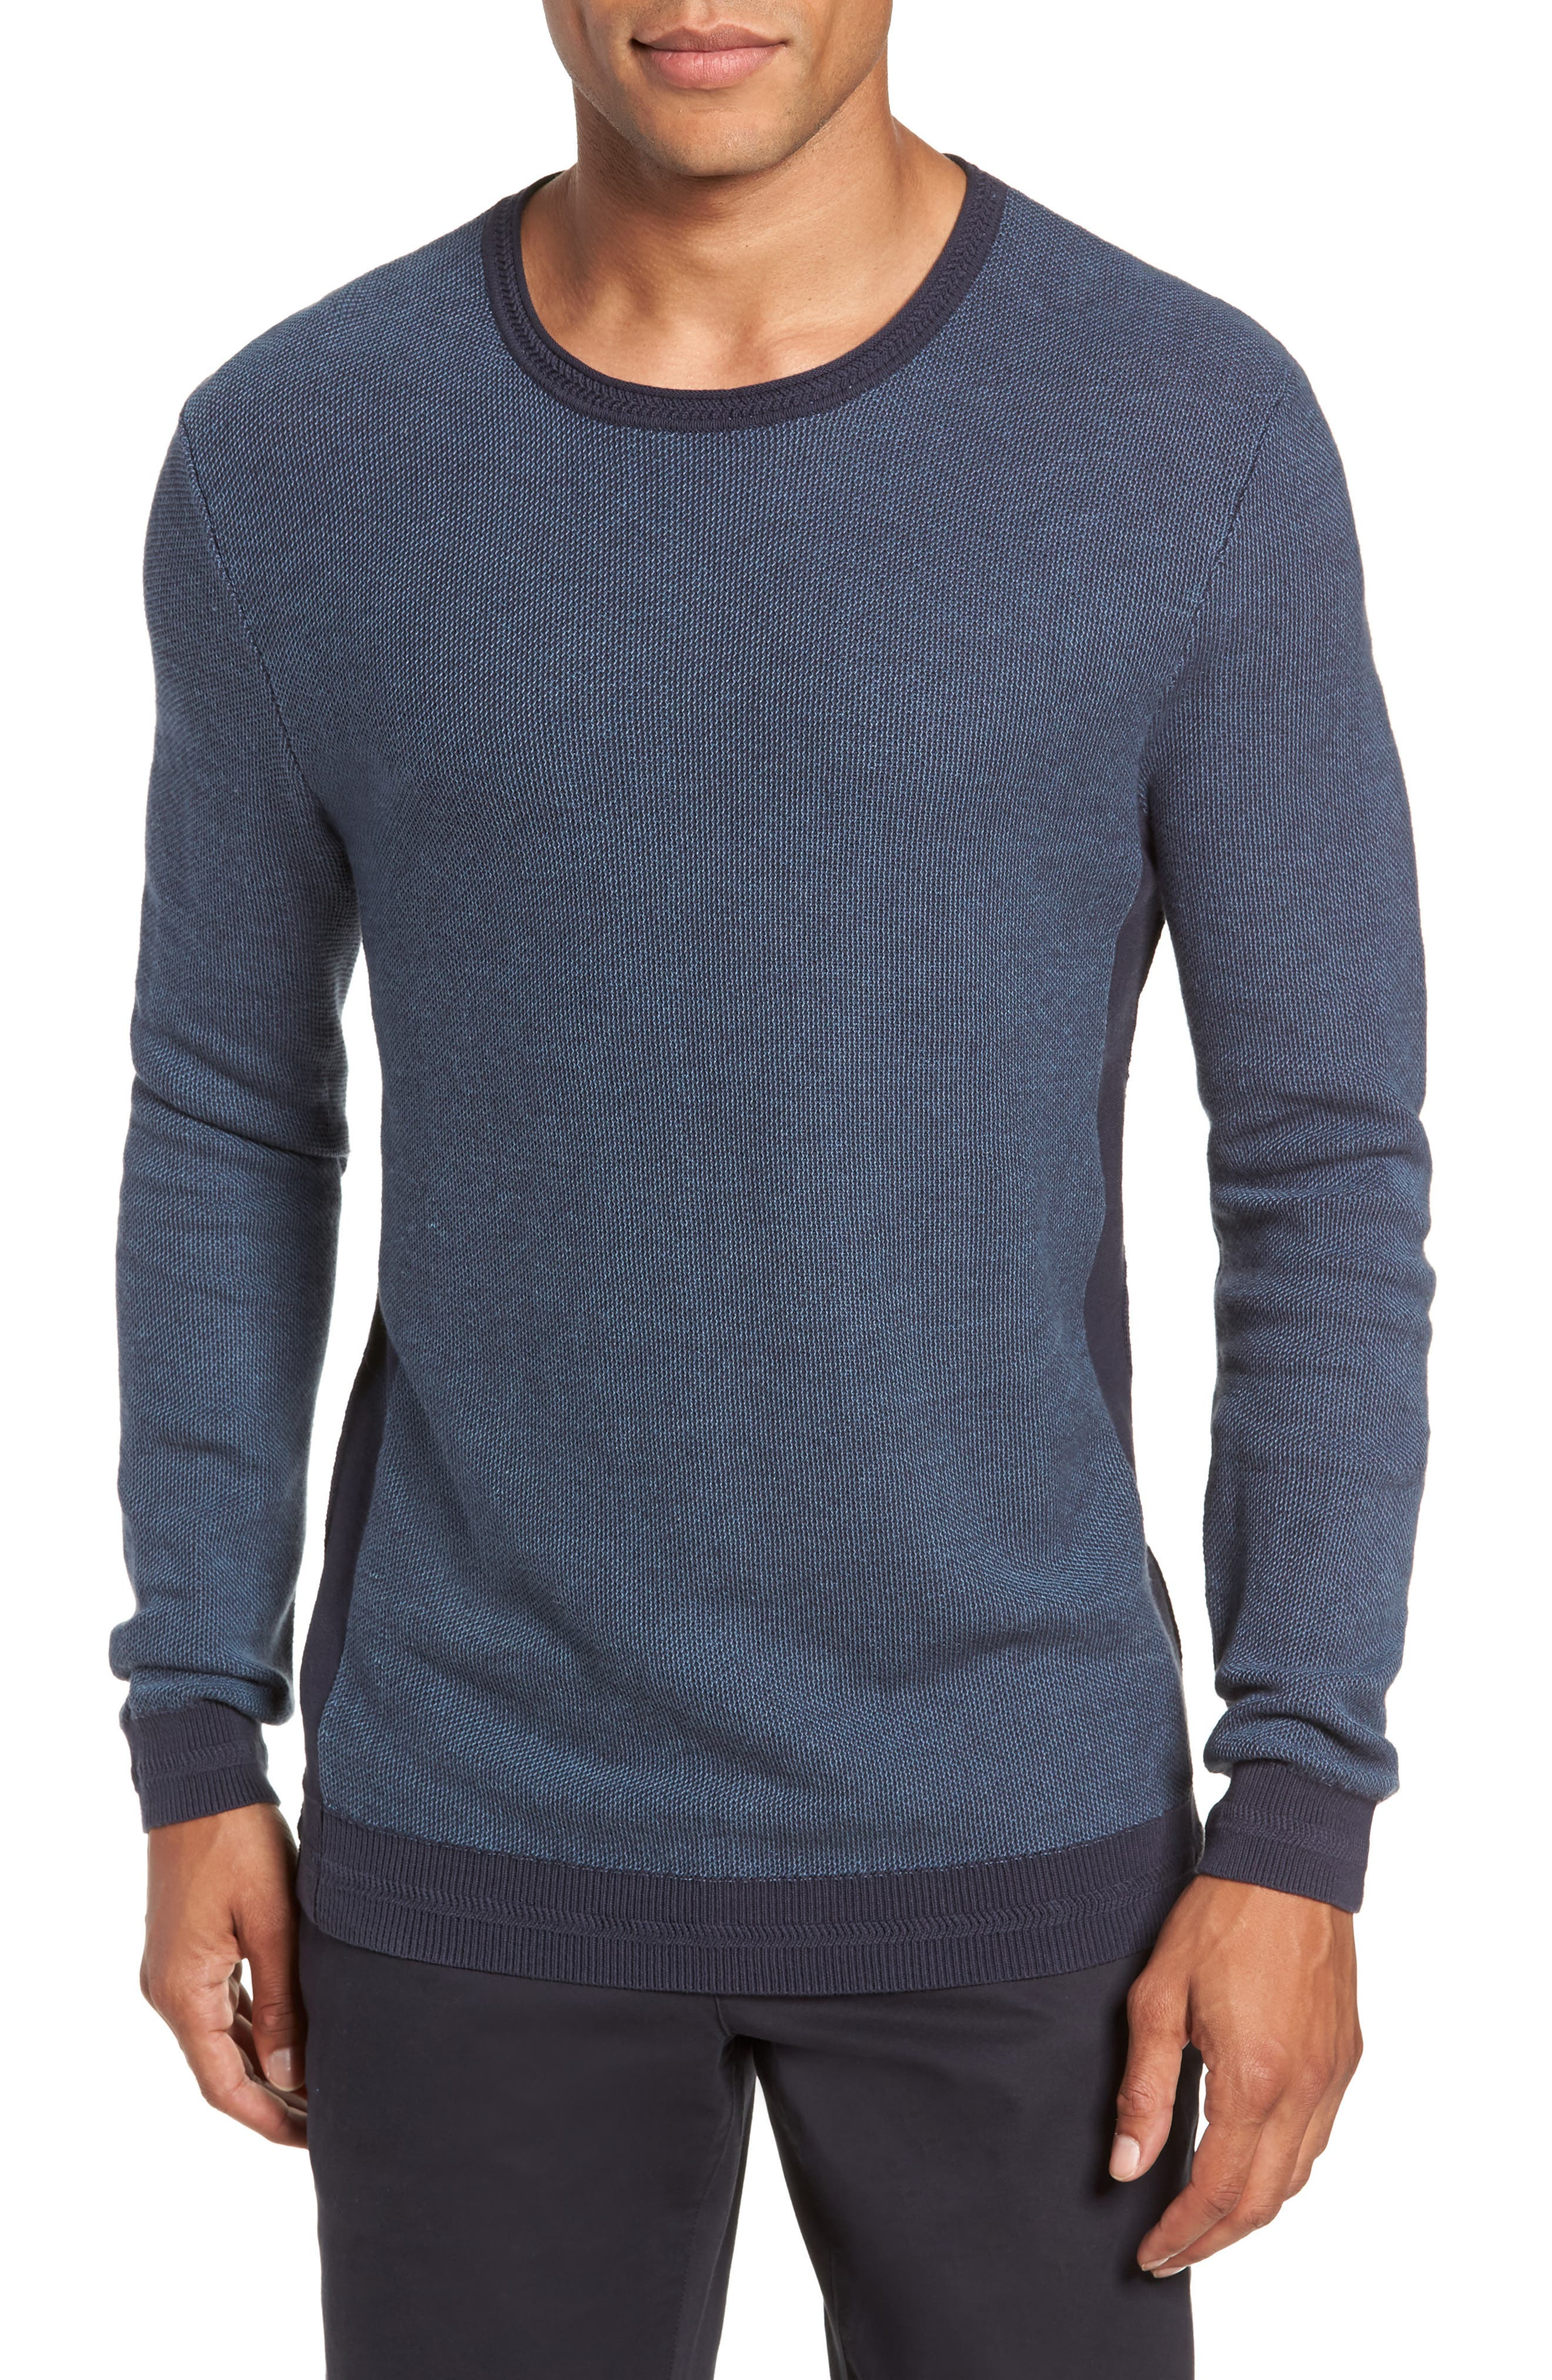 Vince Camuto Space Dye Slim Fit Sweater, Blue